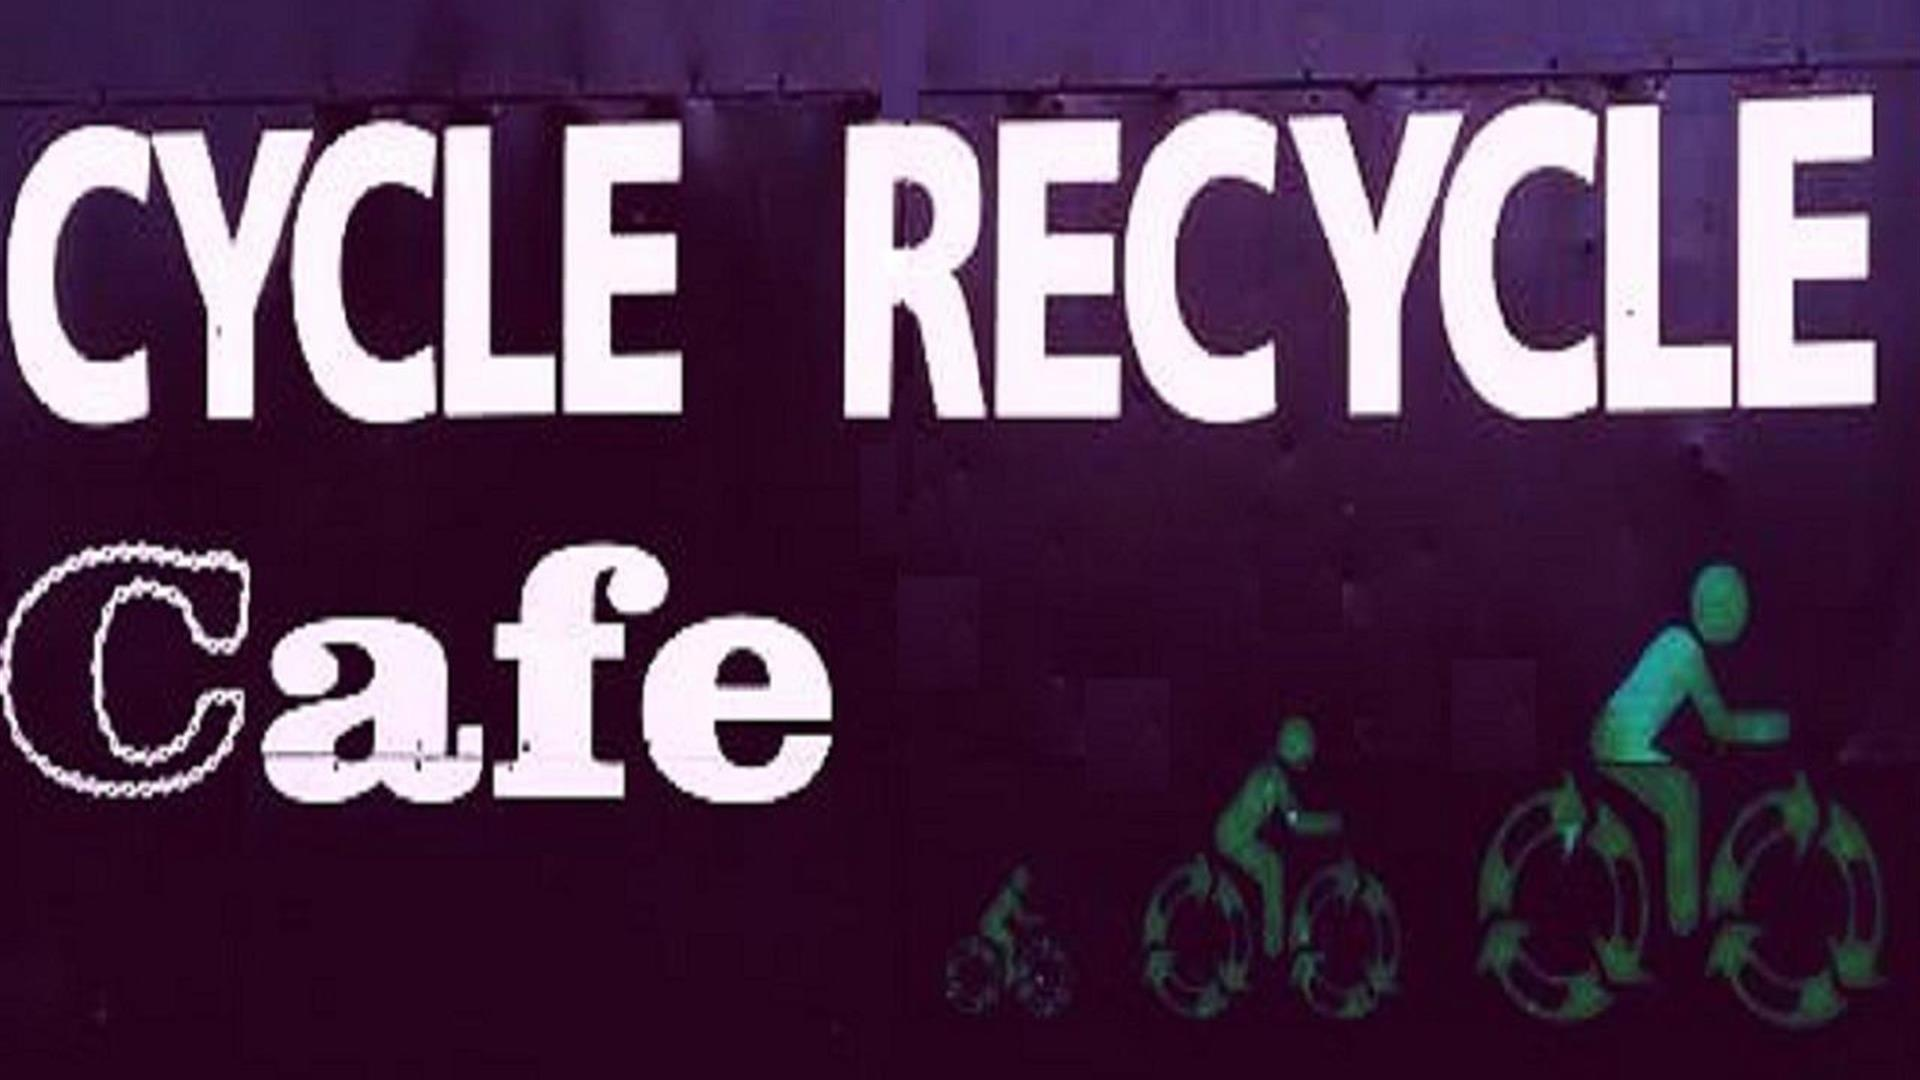 Cycle Recycle Café Newry